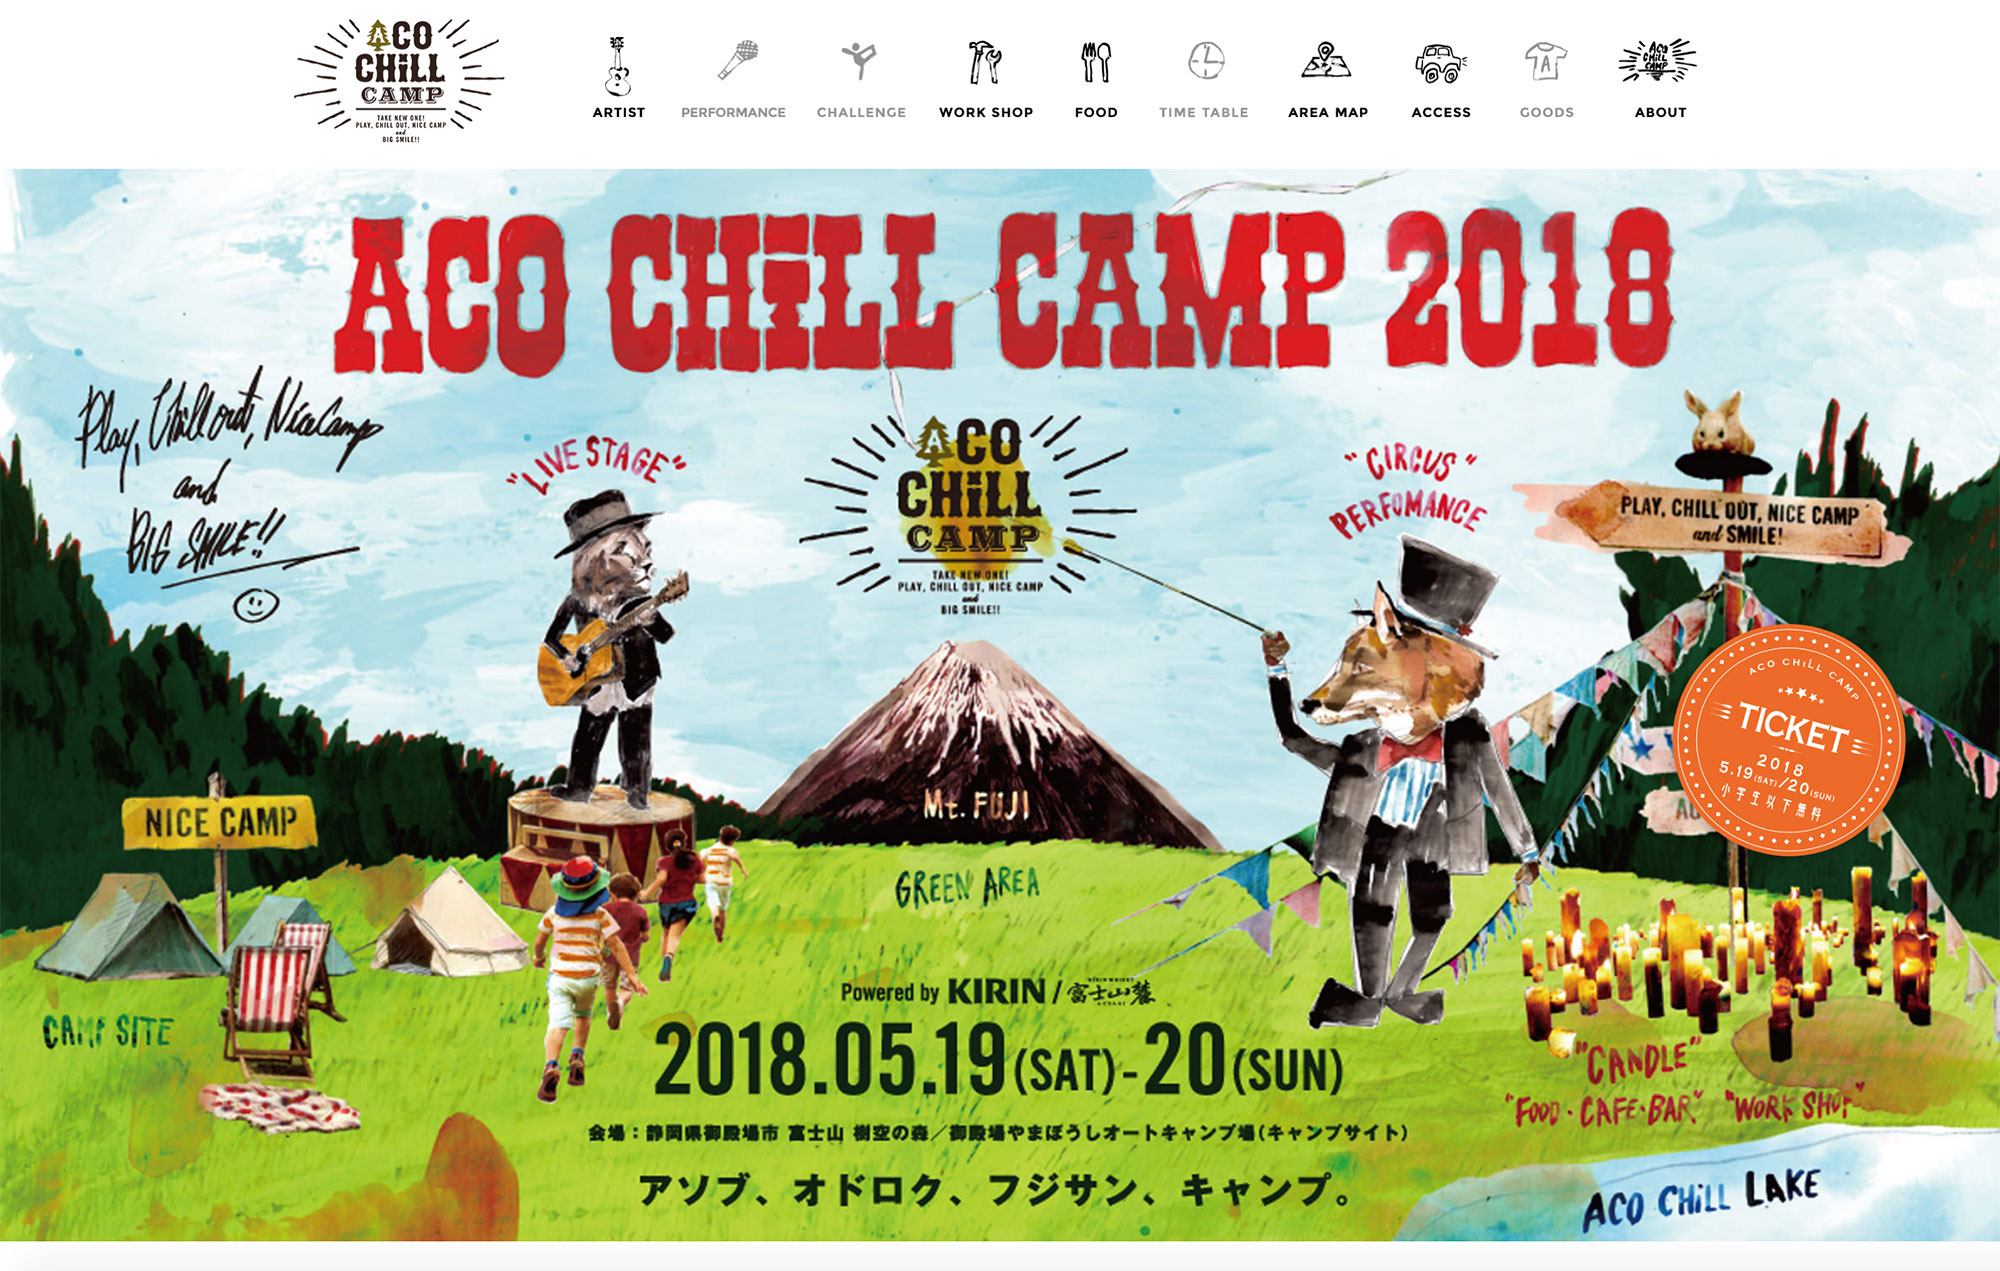 ACO CHiLL CAMP 2018 / Web